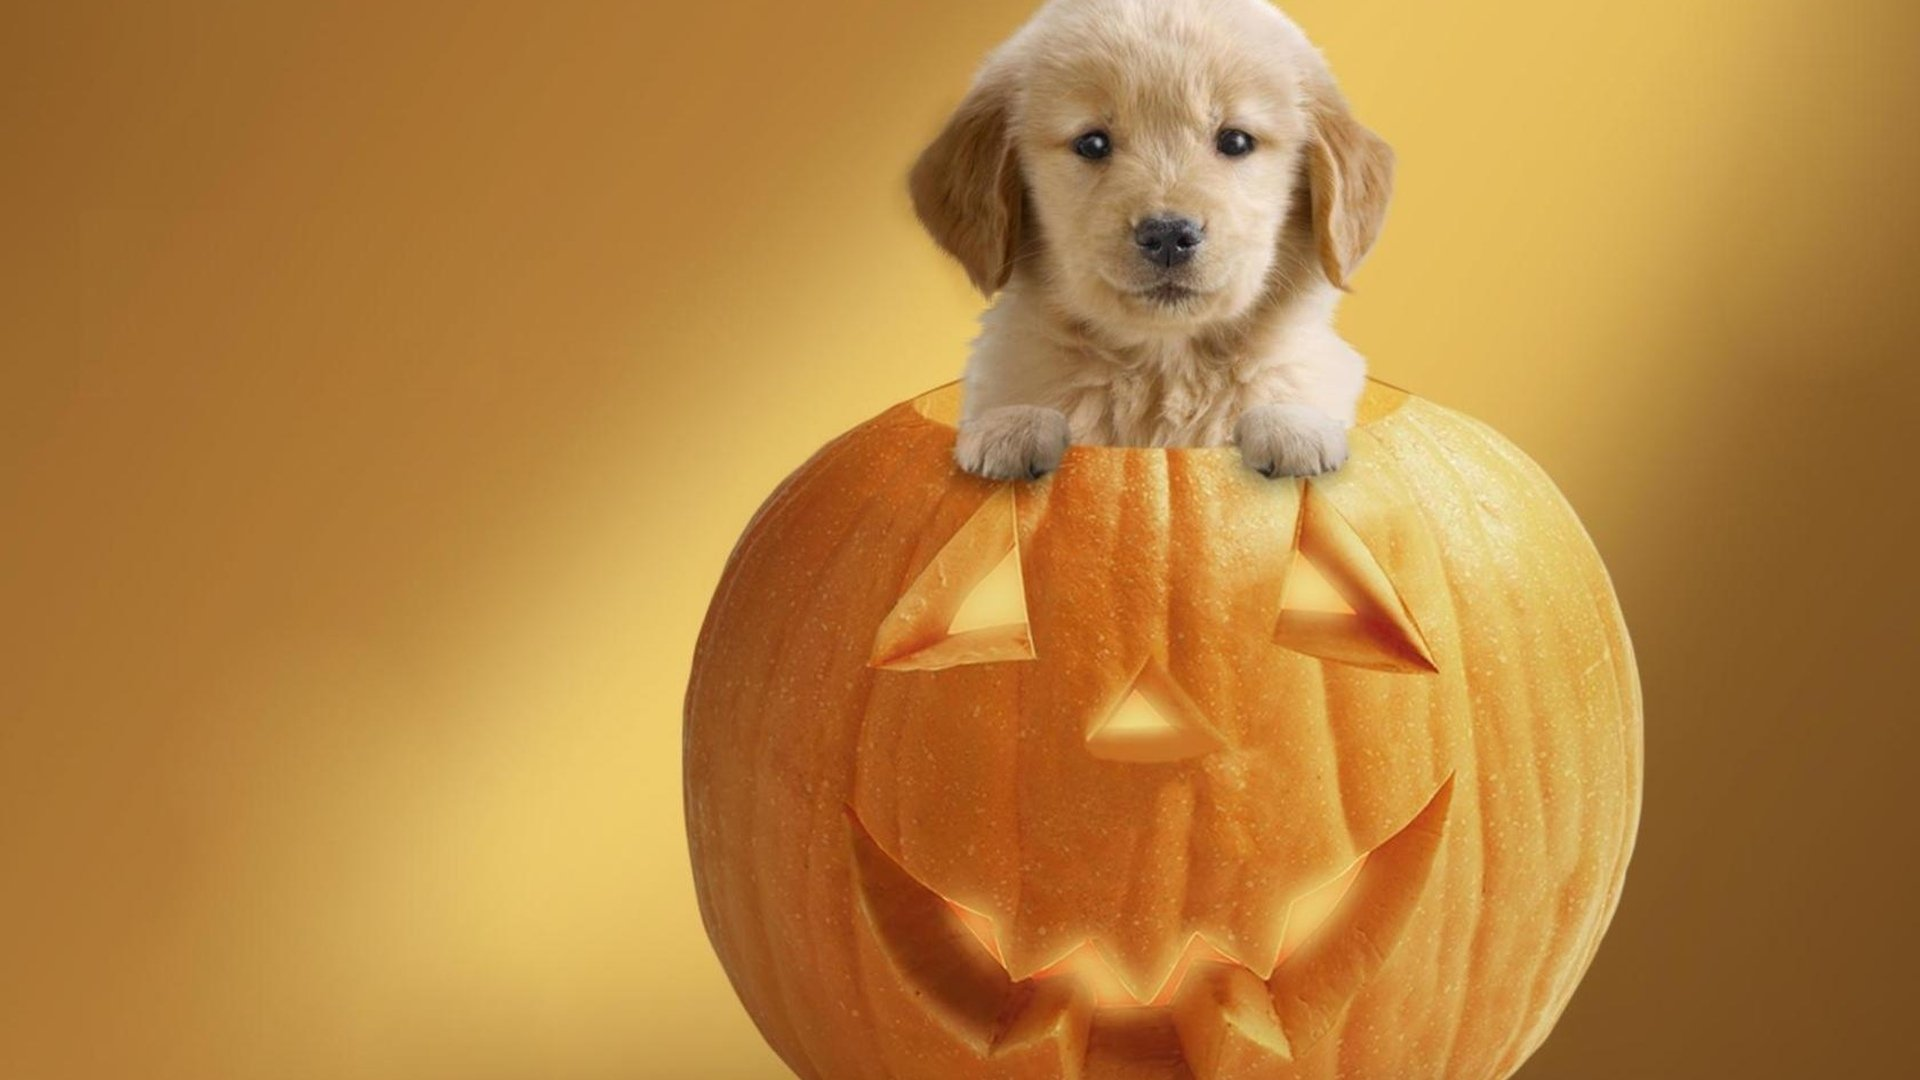 40 Halloween Pumpkins Dog Puppy Wallpapers HD for Desktop